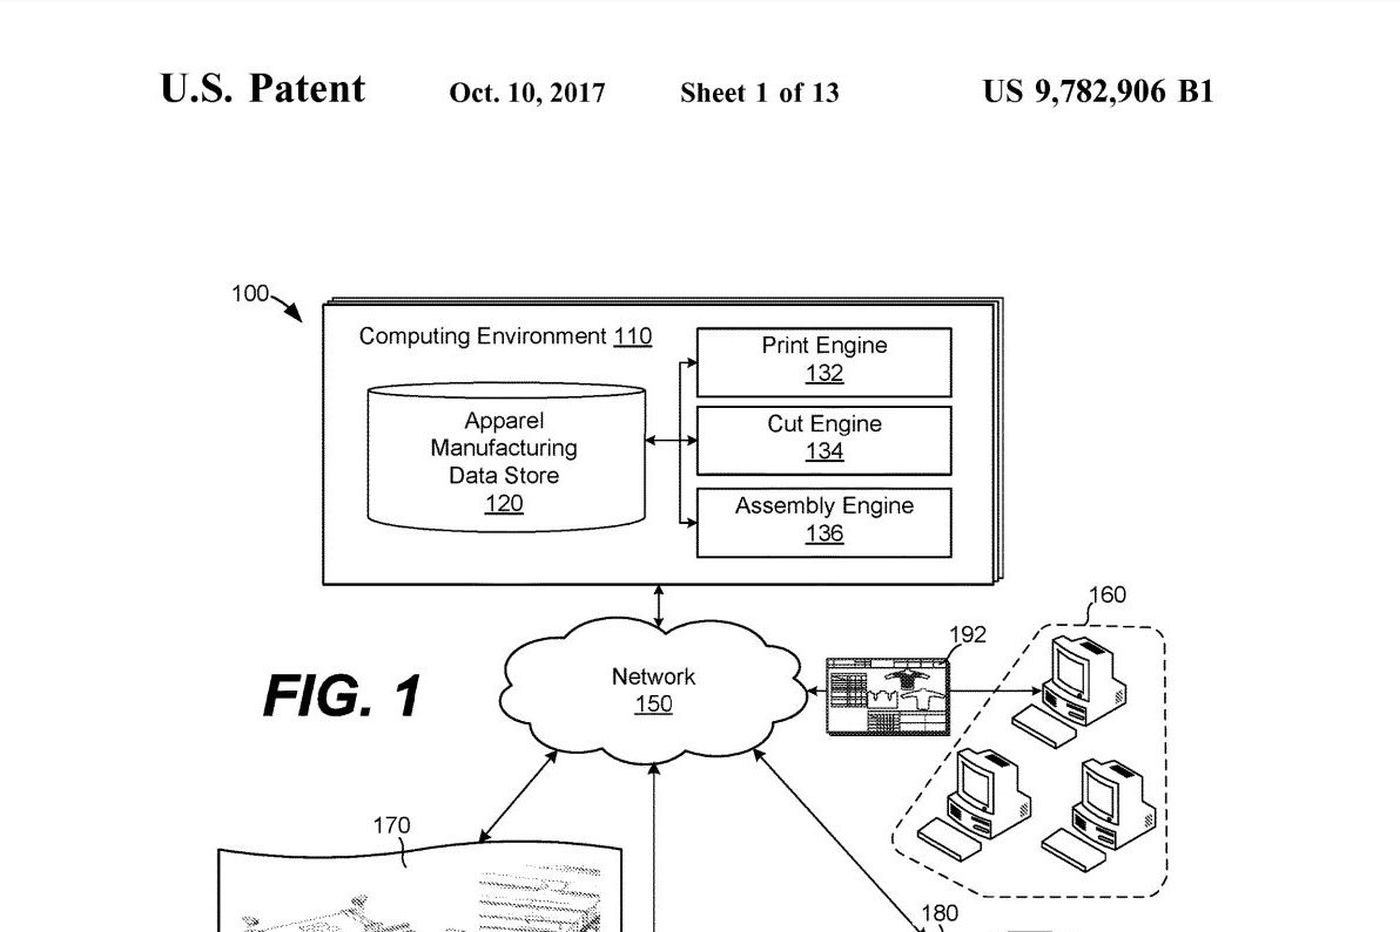 UPDATE: With Pa. plant, U.S. patent, Amazon to manufacture clothes